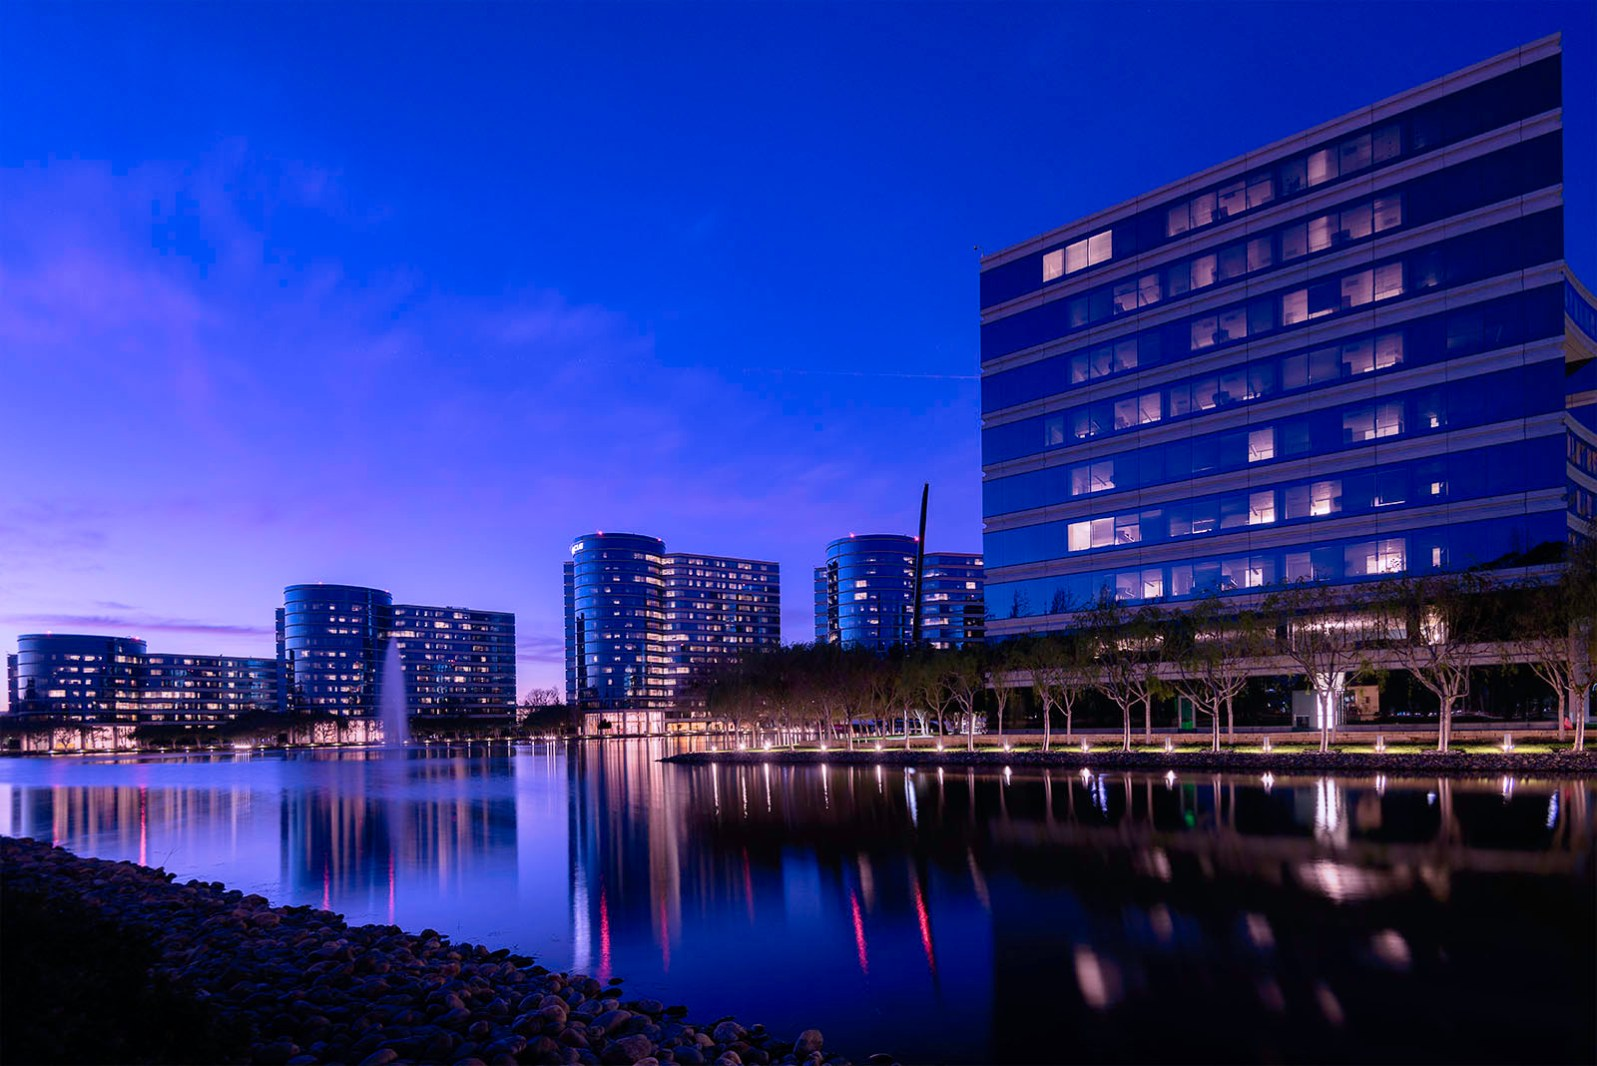 Oracle Corporation Redwood Shores Headquarters